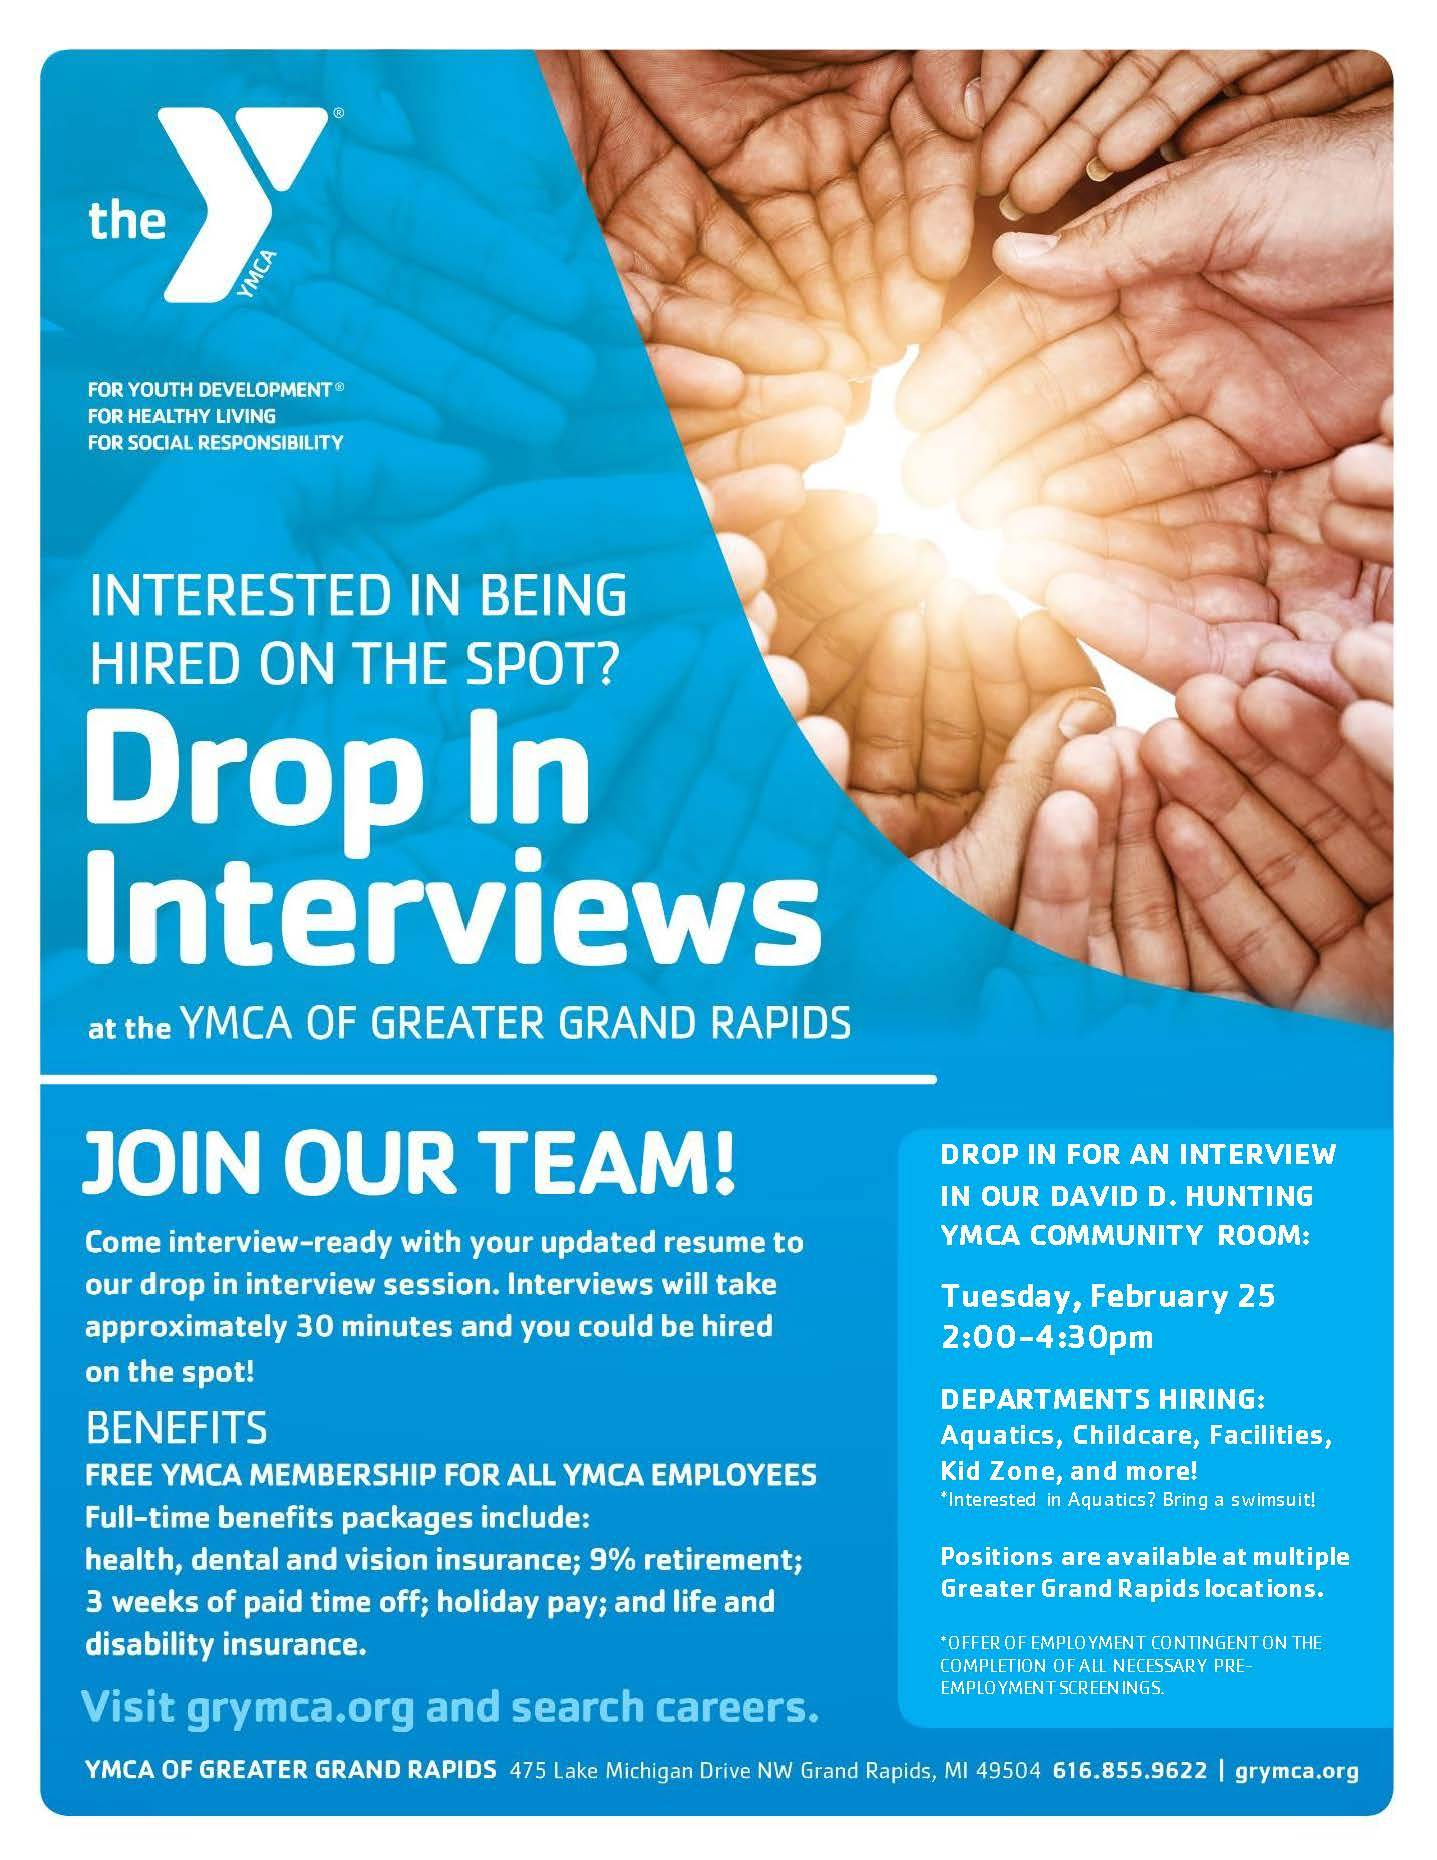 YMCA Drop-In Interviews Tuesday, February 25 from 2:00 pm to 4:30 pm in the David D. Hunting Community Room